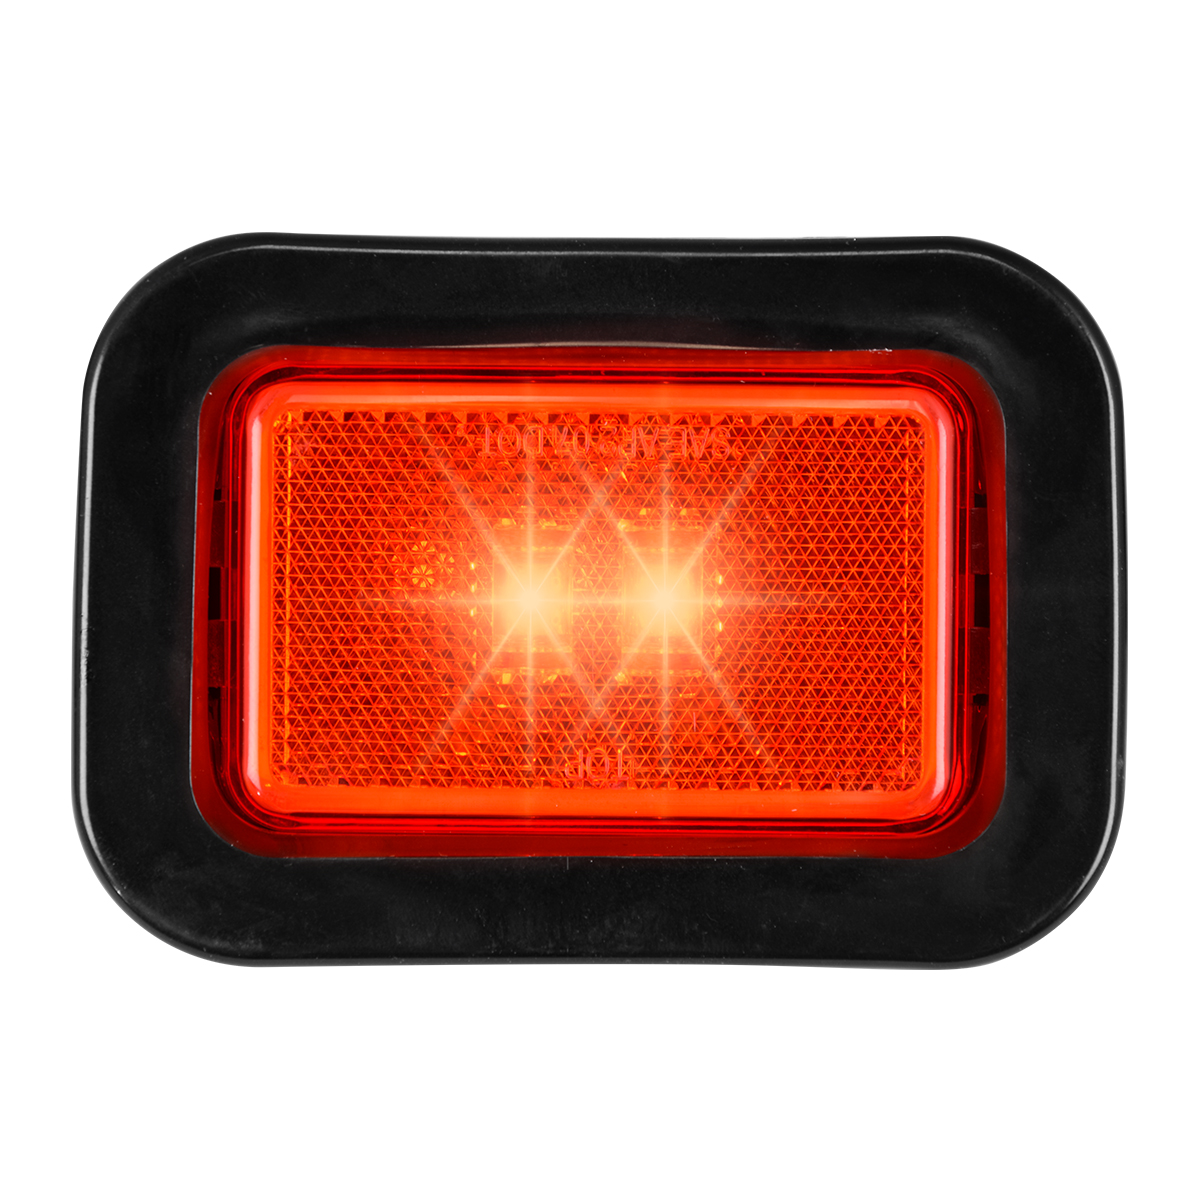 78596 Rectangular Marker LED w/ Reflector Lens